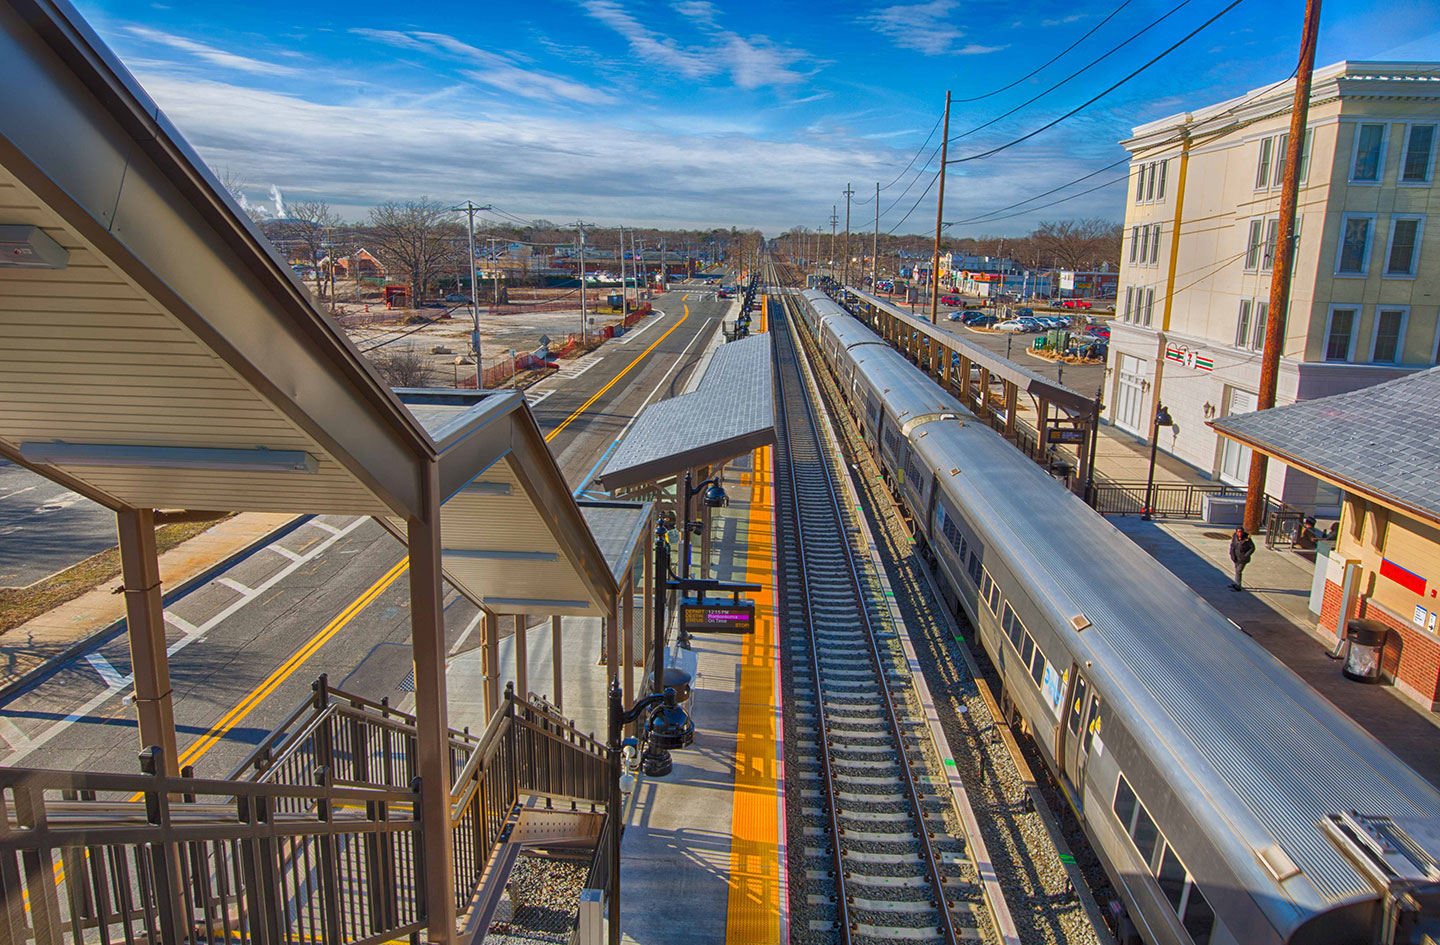 Station improvements included a pedestrian overpass with ADA-compliant elevators, new stairs, new canopies, and new platform shelters.